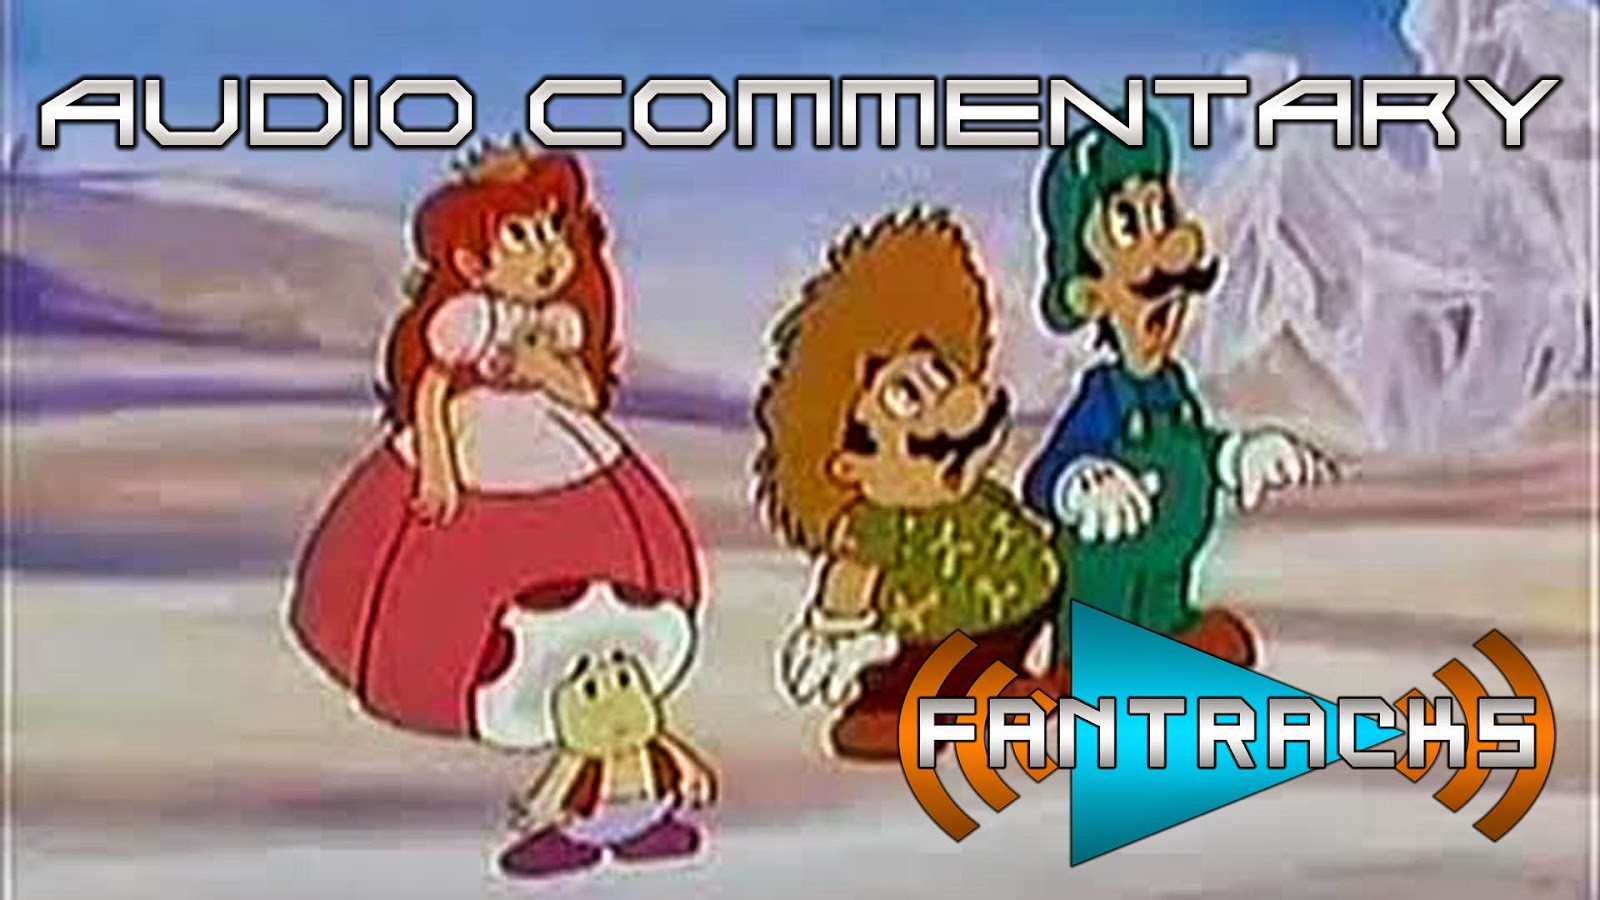 FanTracks The Super Mario Bros. Super Show! audio commentary